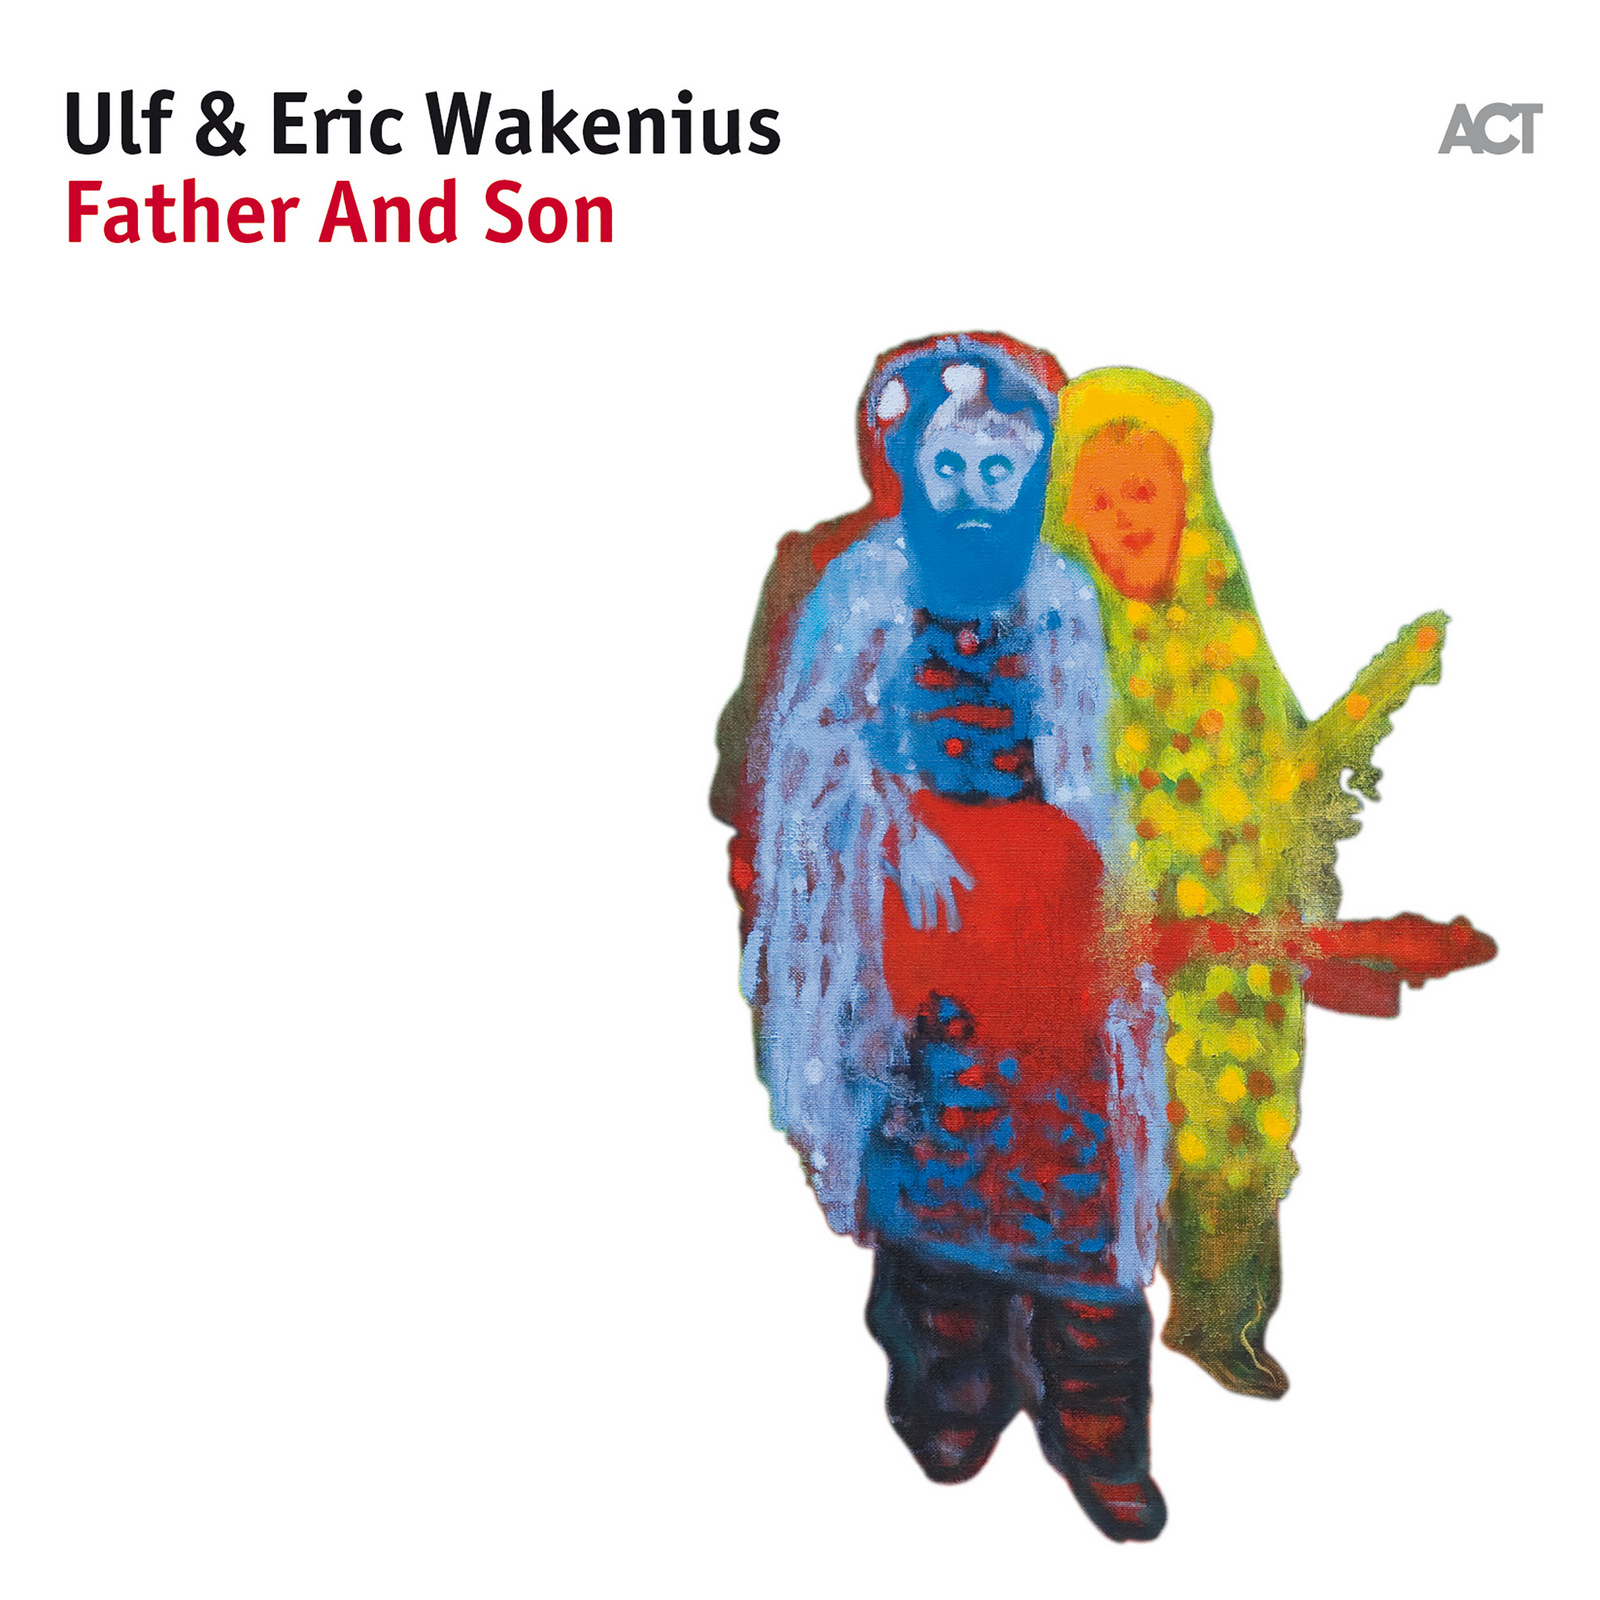 ULF & ERIC WAKENIUS - Father And Son